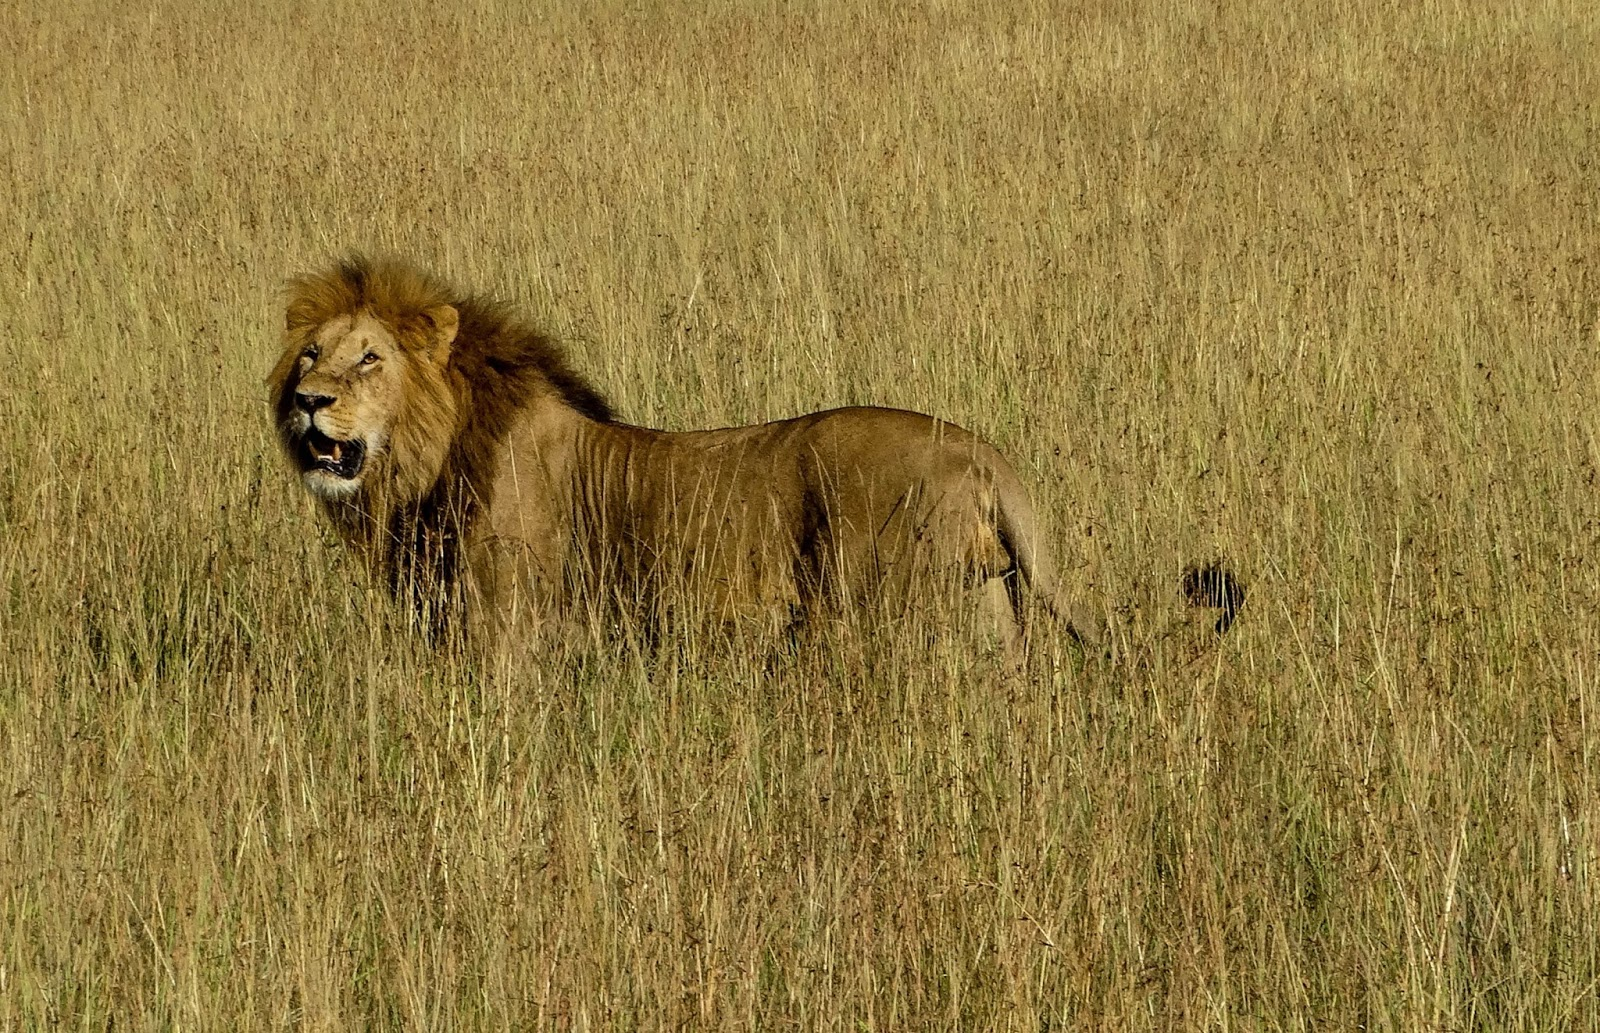 This is a lion photogr...